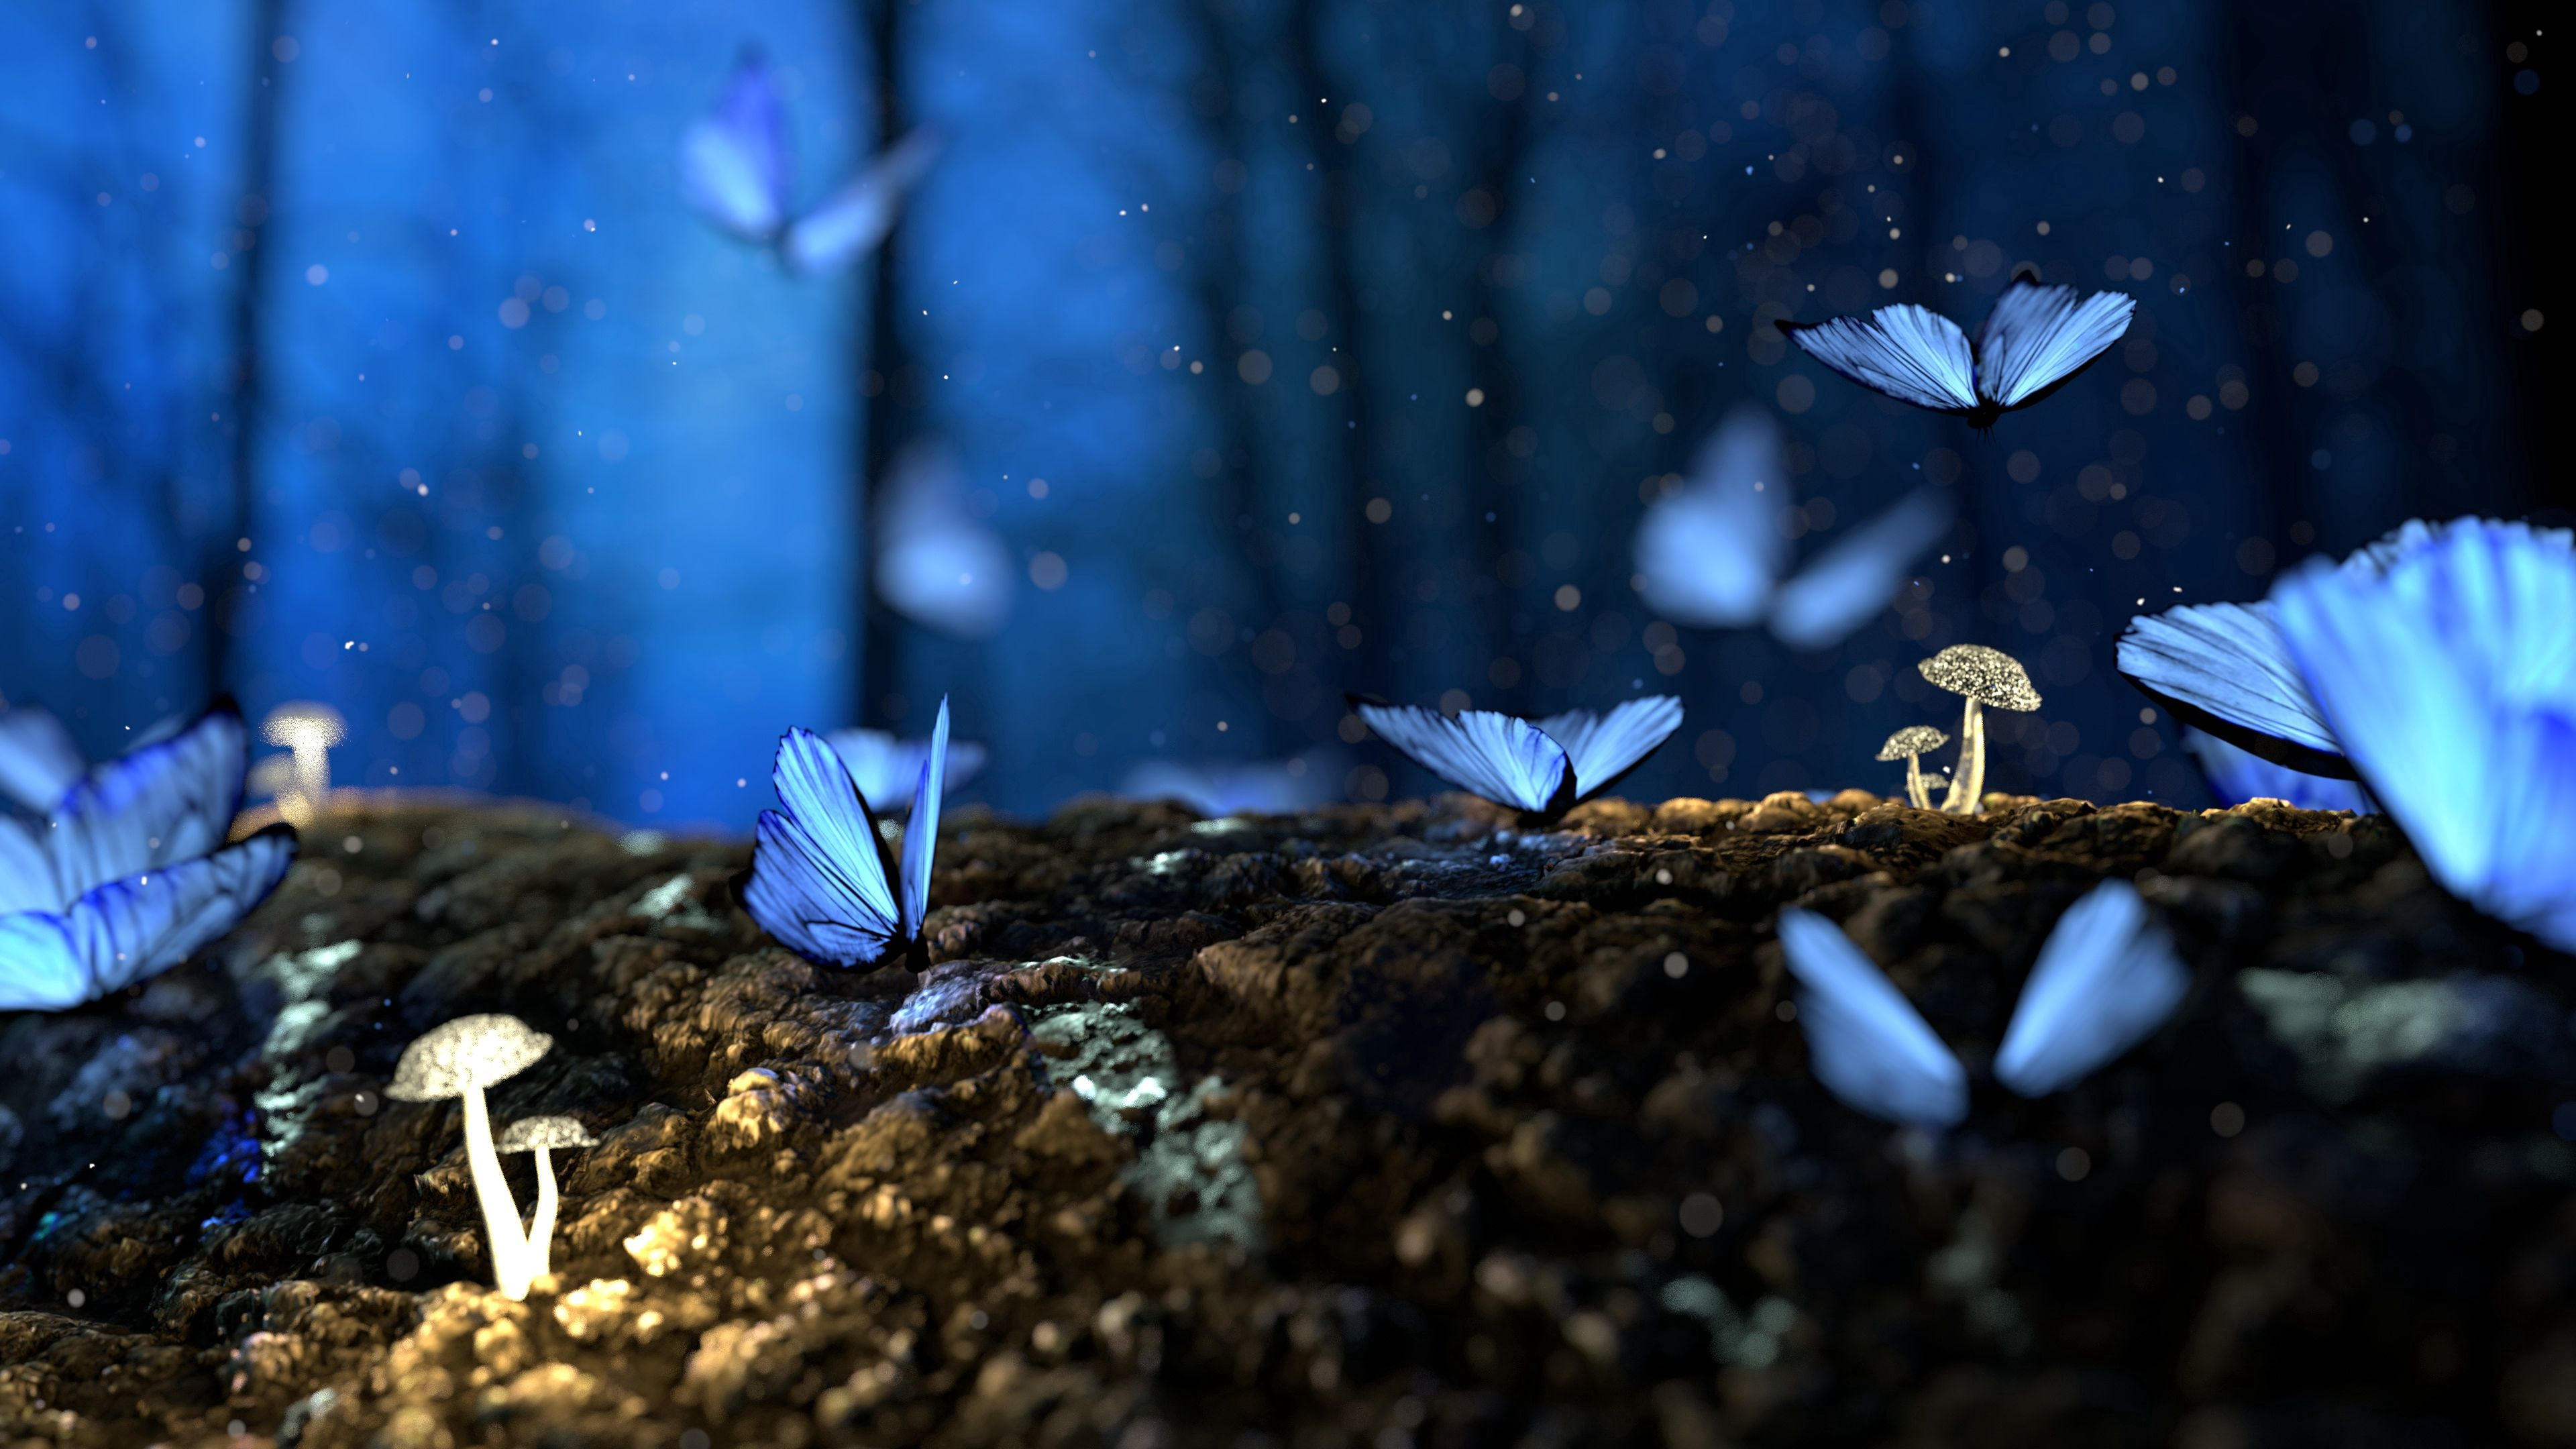 143890 download wallpaper Butterflies, Fantasy, Mashrooms, Macro, Forest screensavers and pictures for free